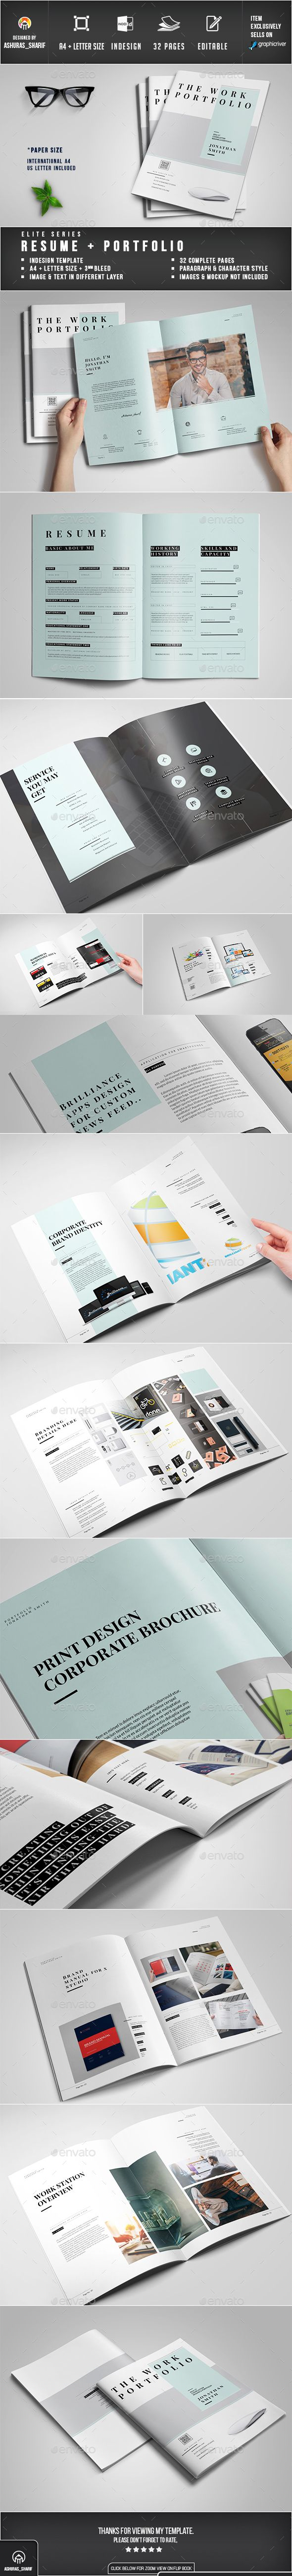 Portfolio InDesign Template • Download ➝ https://graphicriver.net ...